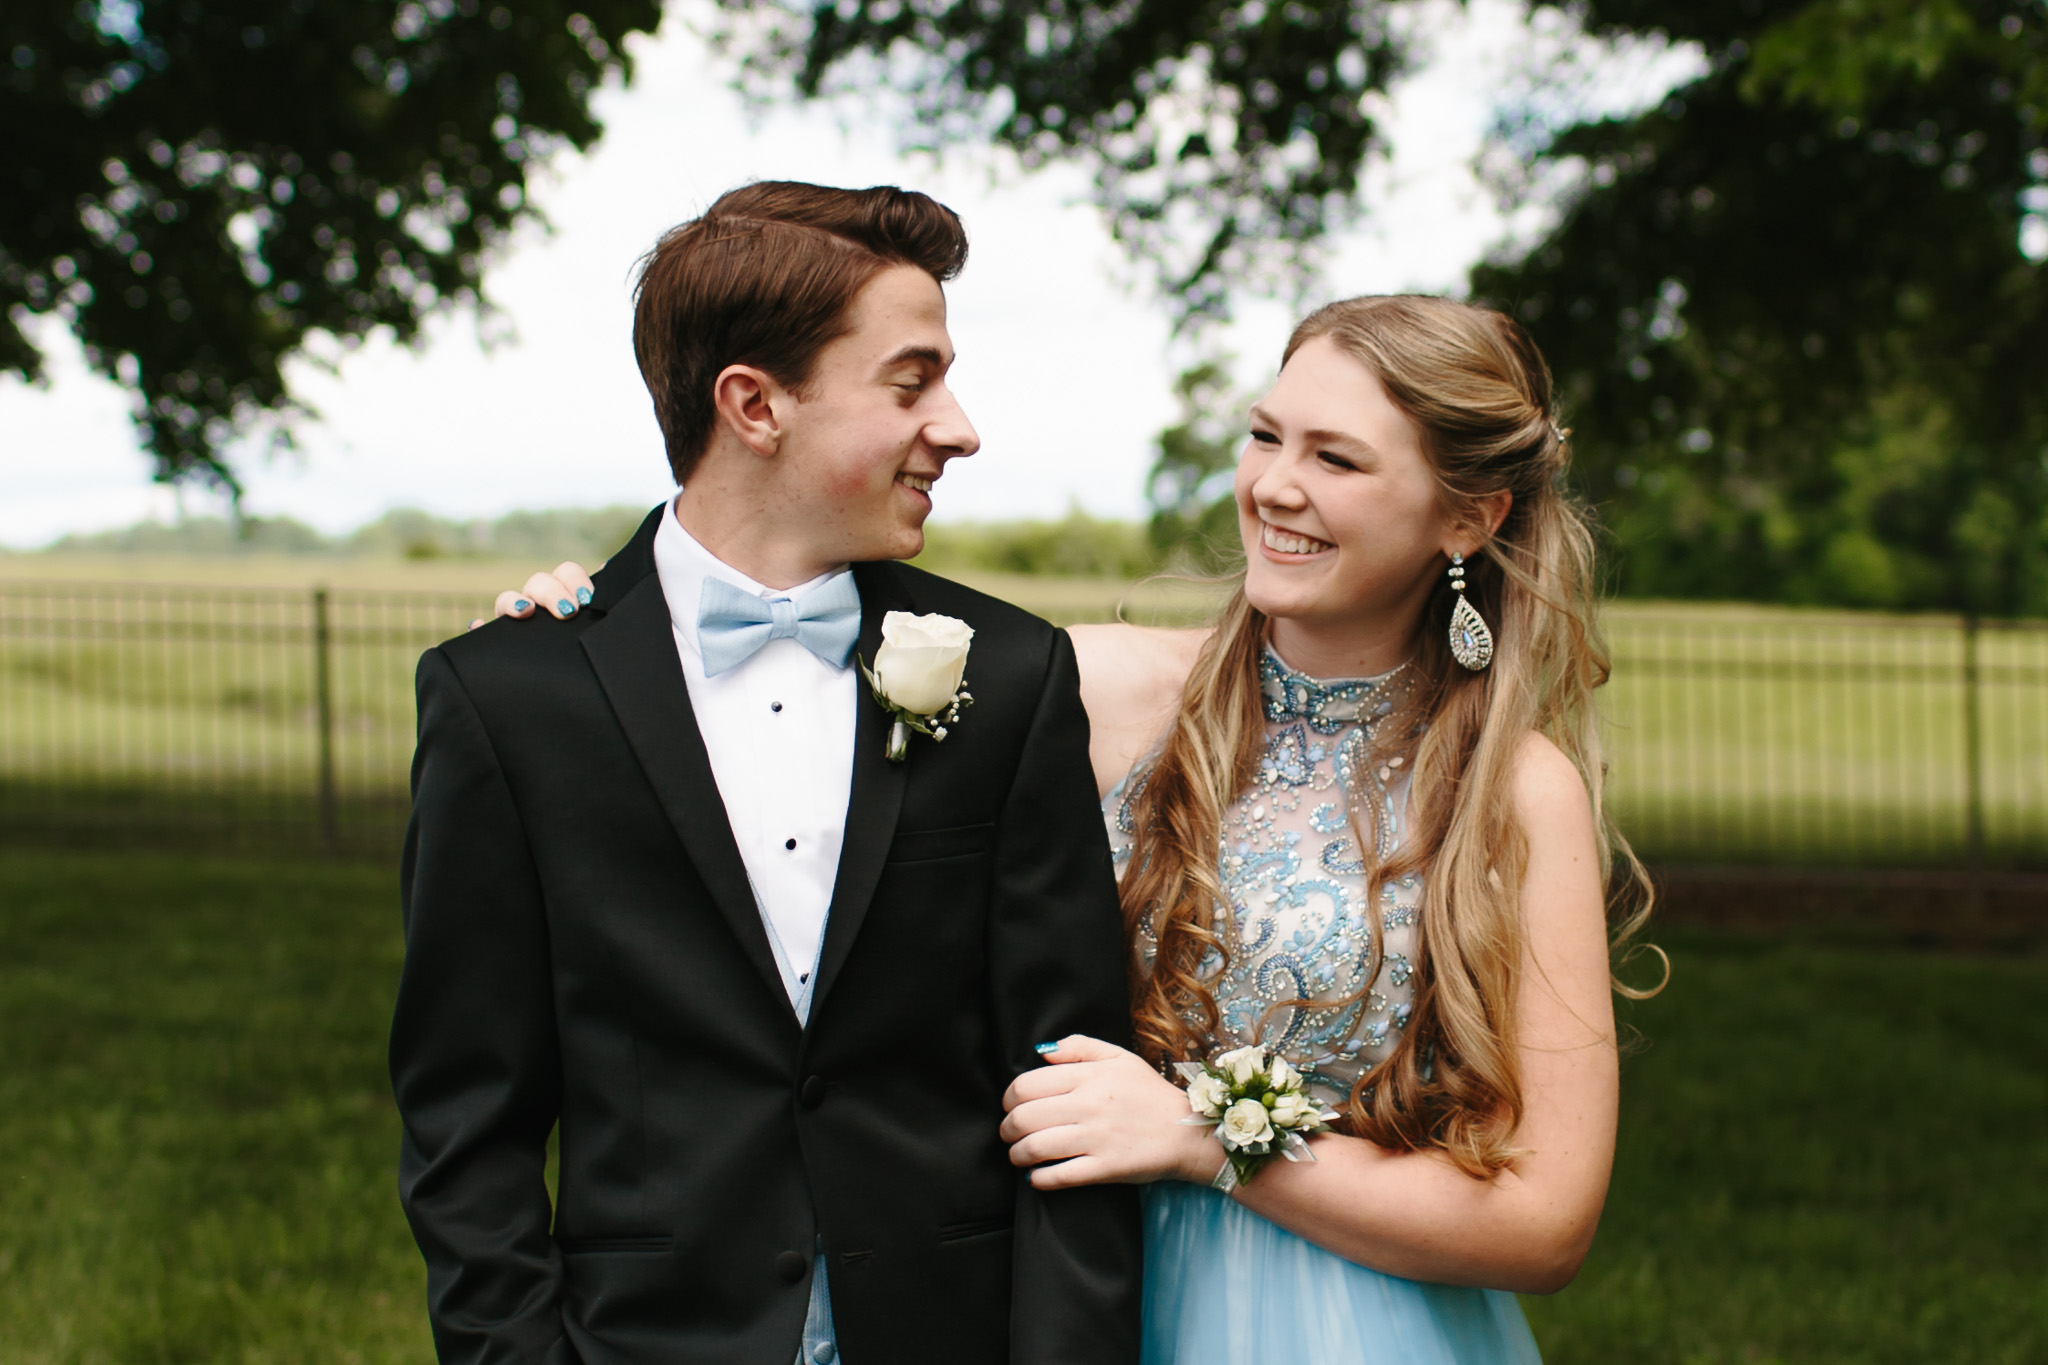 jennichandlerphotography_2017Prom_WEB-24.jpg